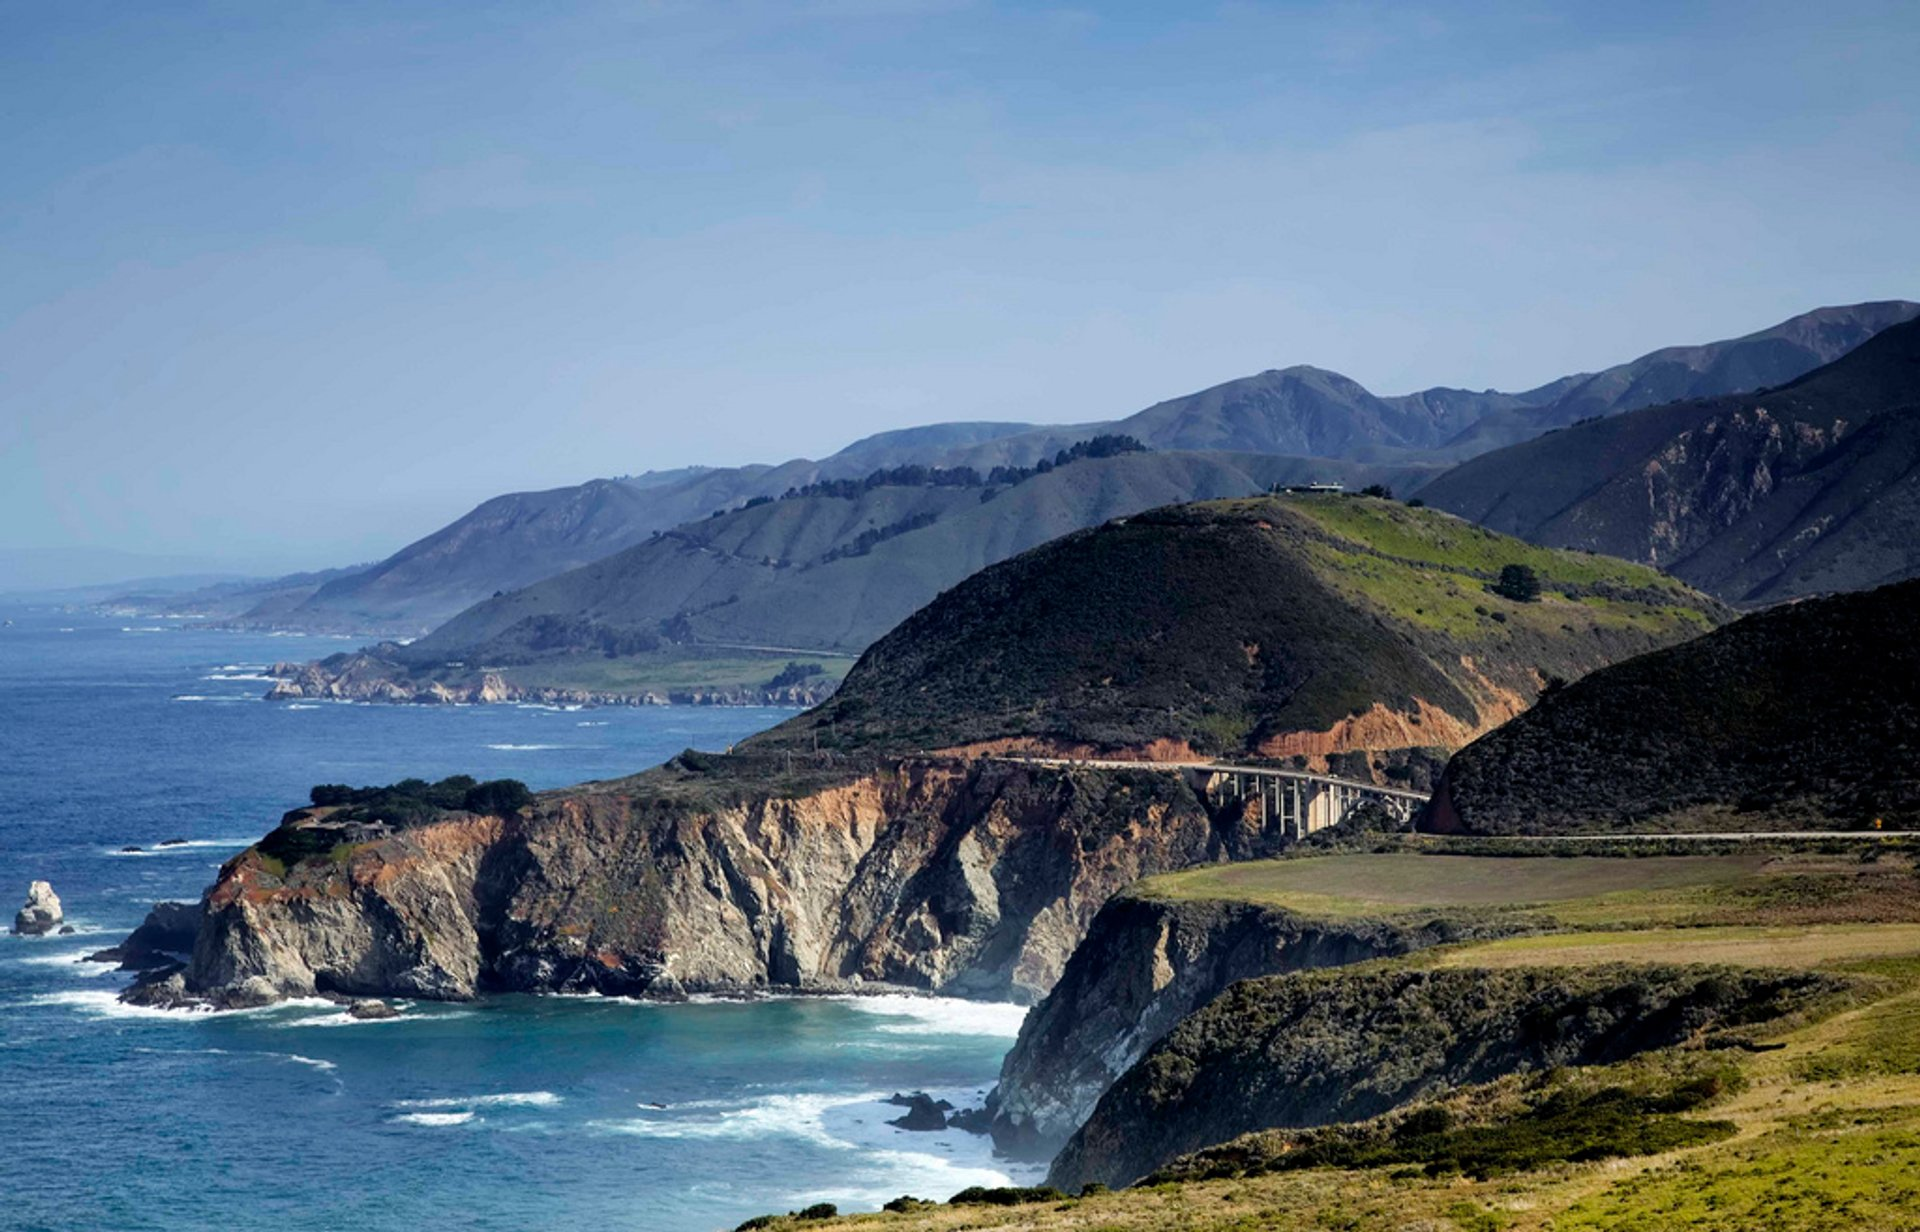 Bixby Creek Bridge crosses over land to land